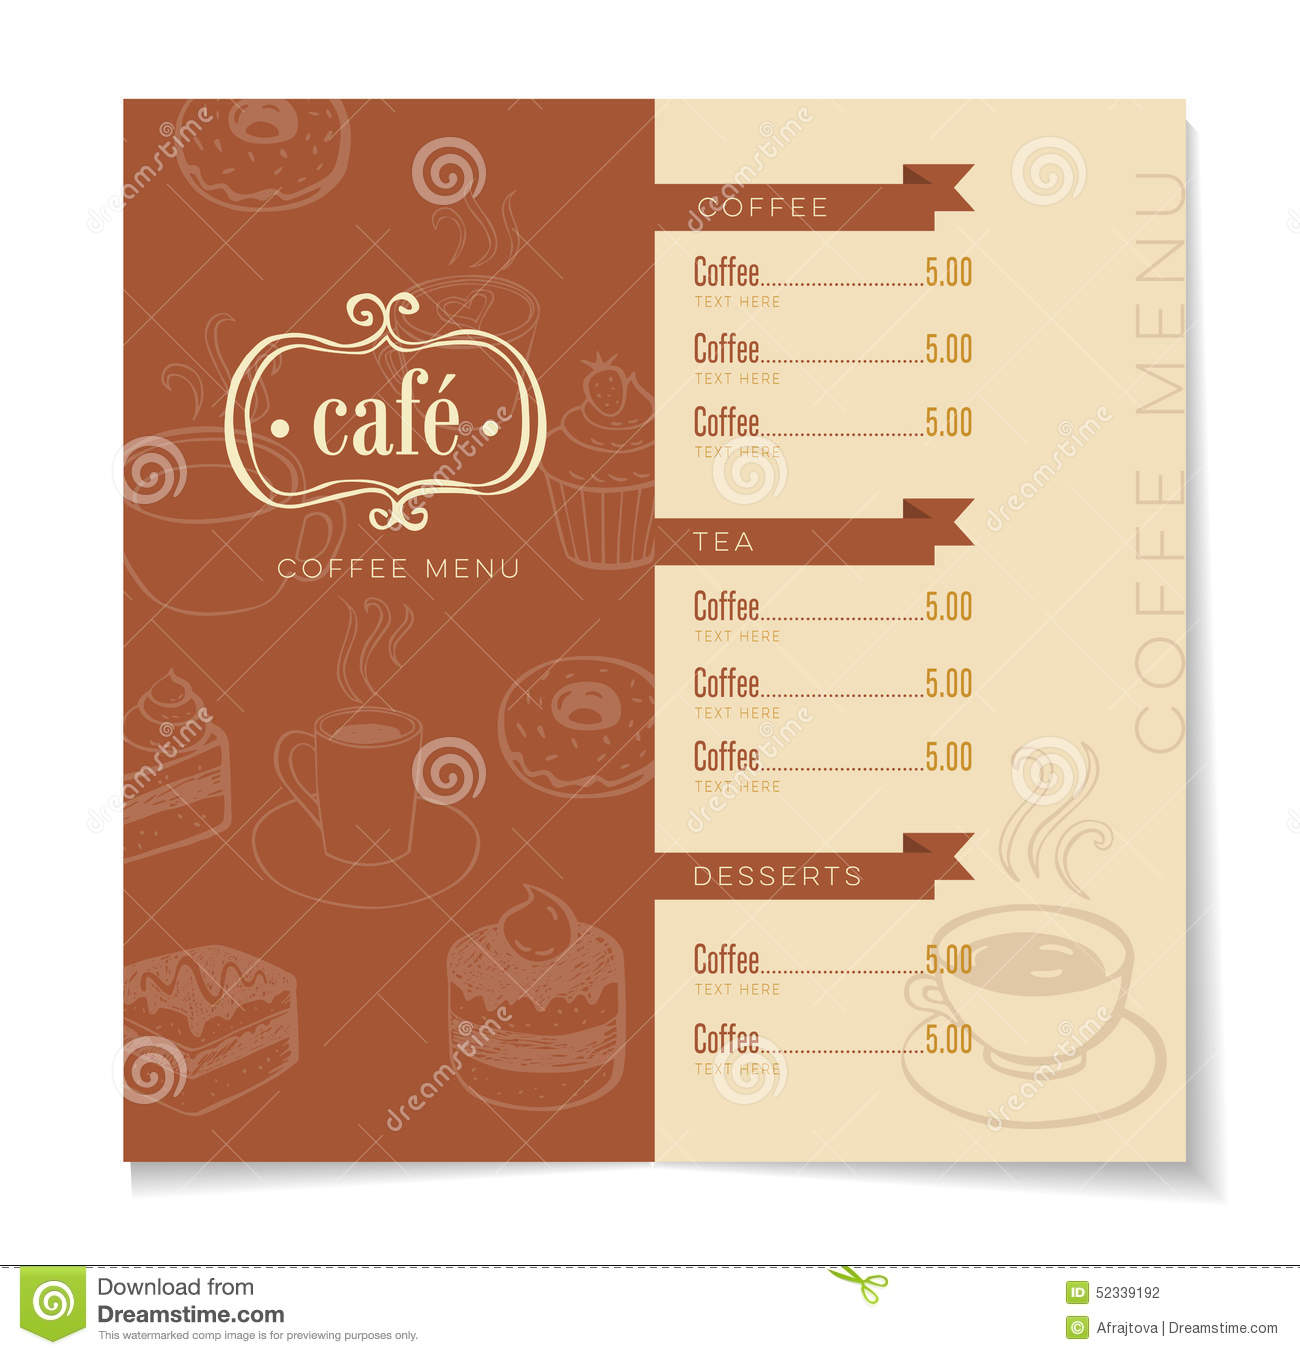 html menu bar templates free download - cafeterie cartoons illustrations vector stock images